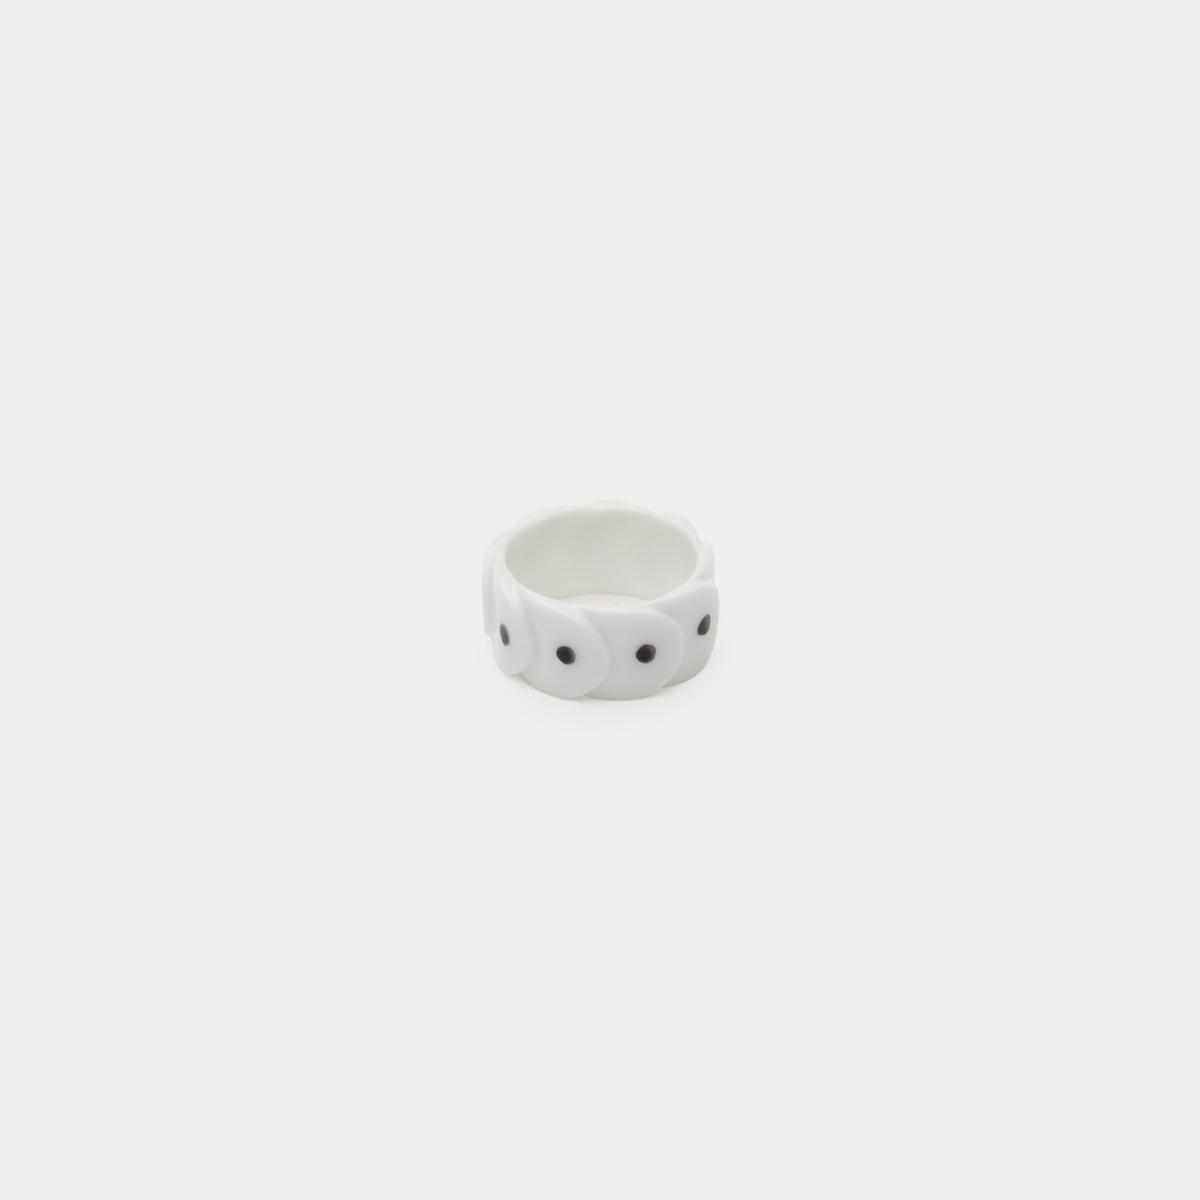 [Accessory] 2016/ Saskia Diez Drake Ring No.1 (White-Black Dot) | Imari-Arita Wares